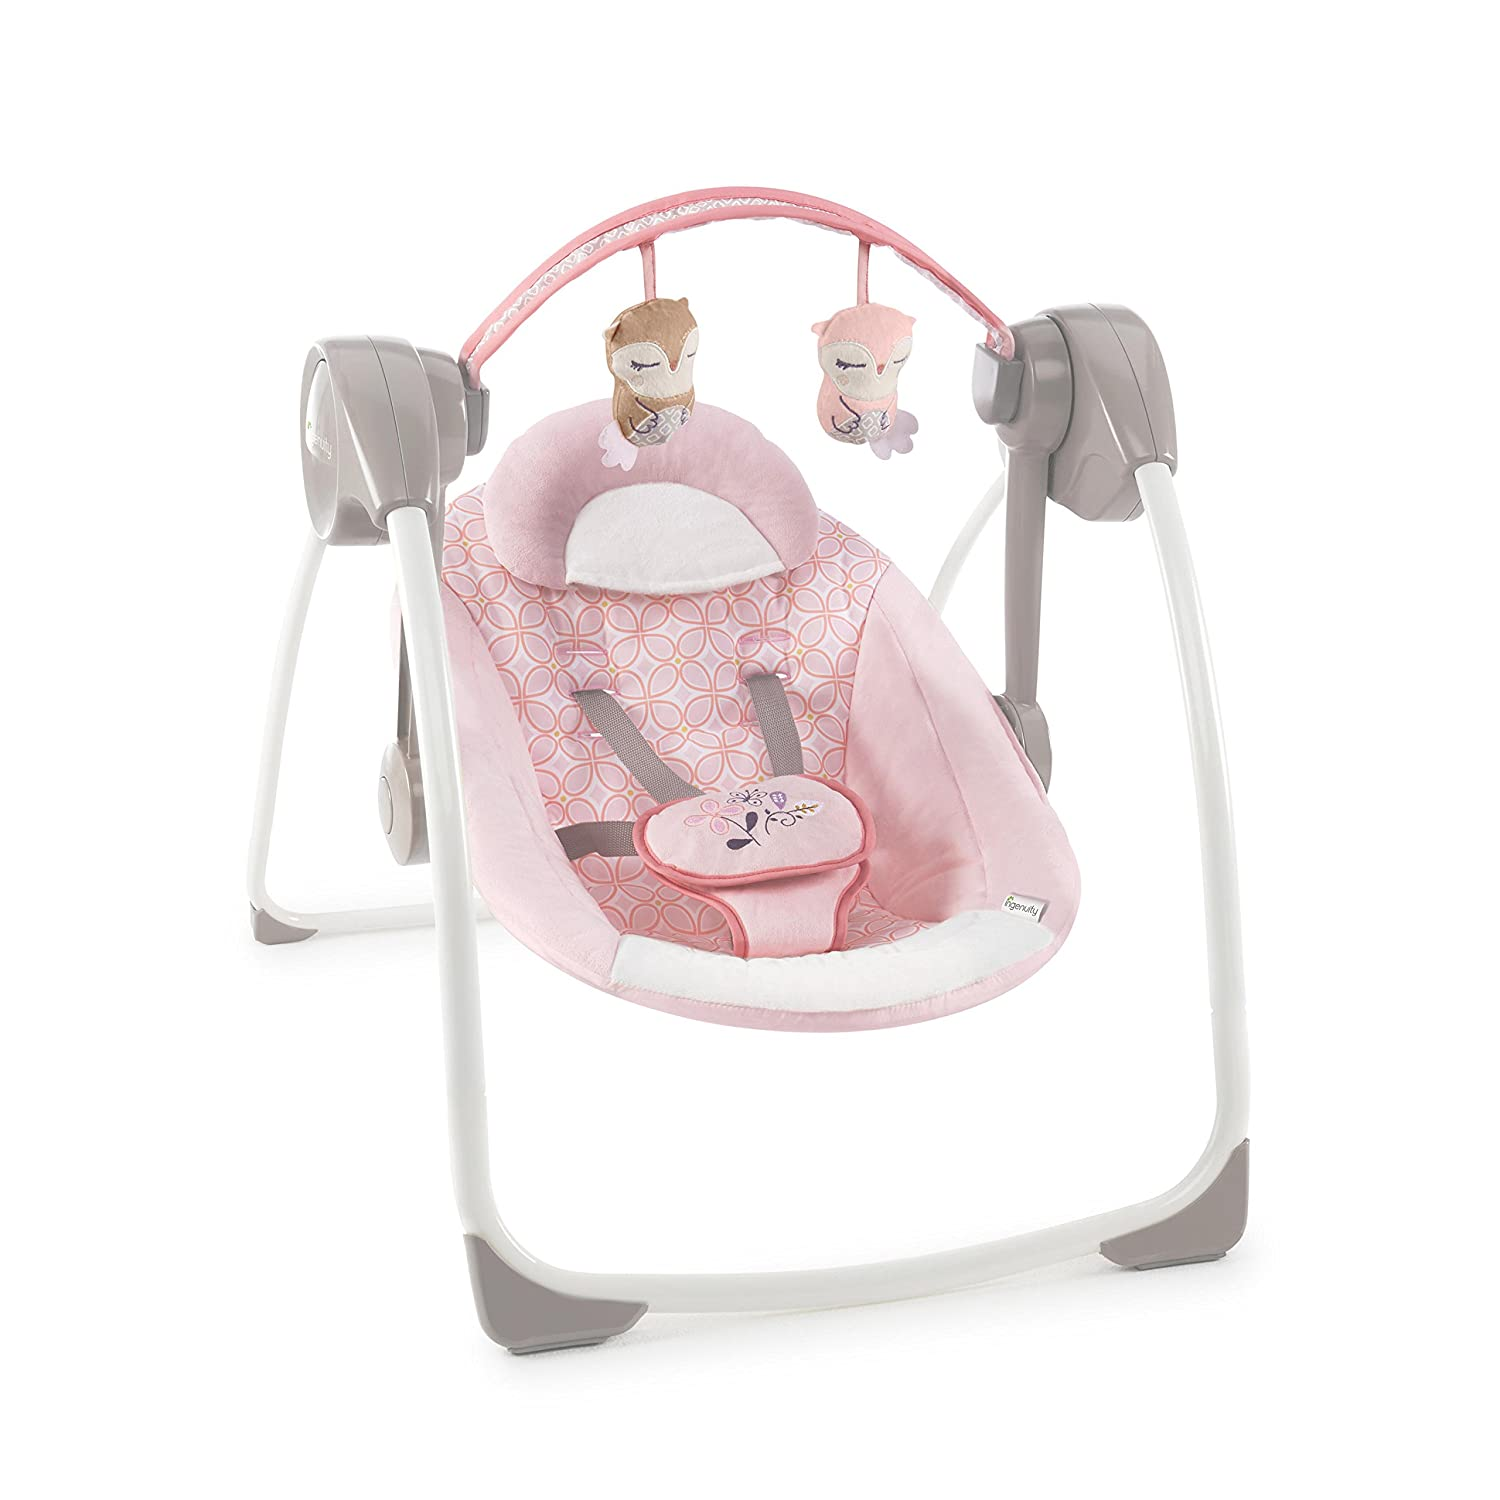 The Top Five Best Swing For Baby: Choose The Best One 4